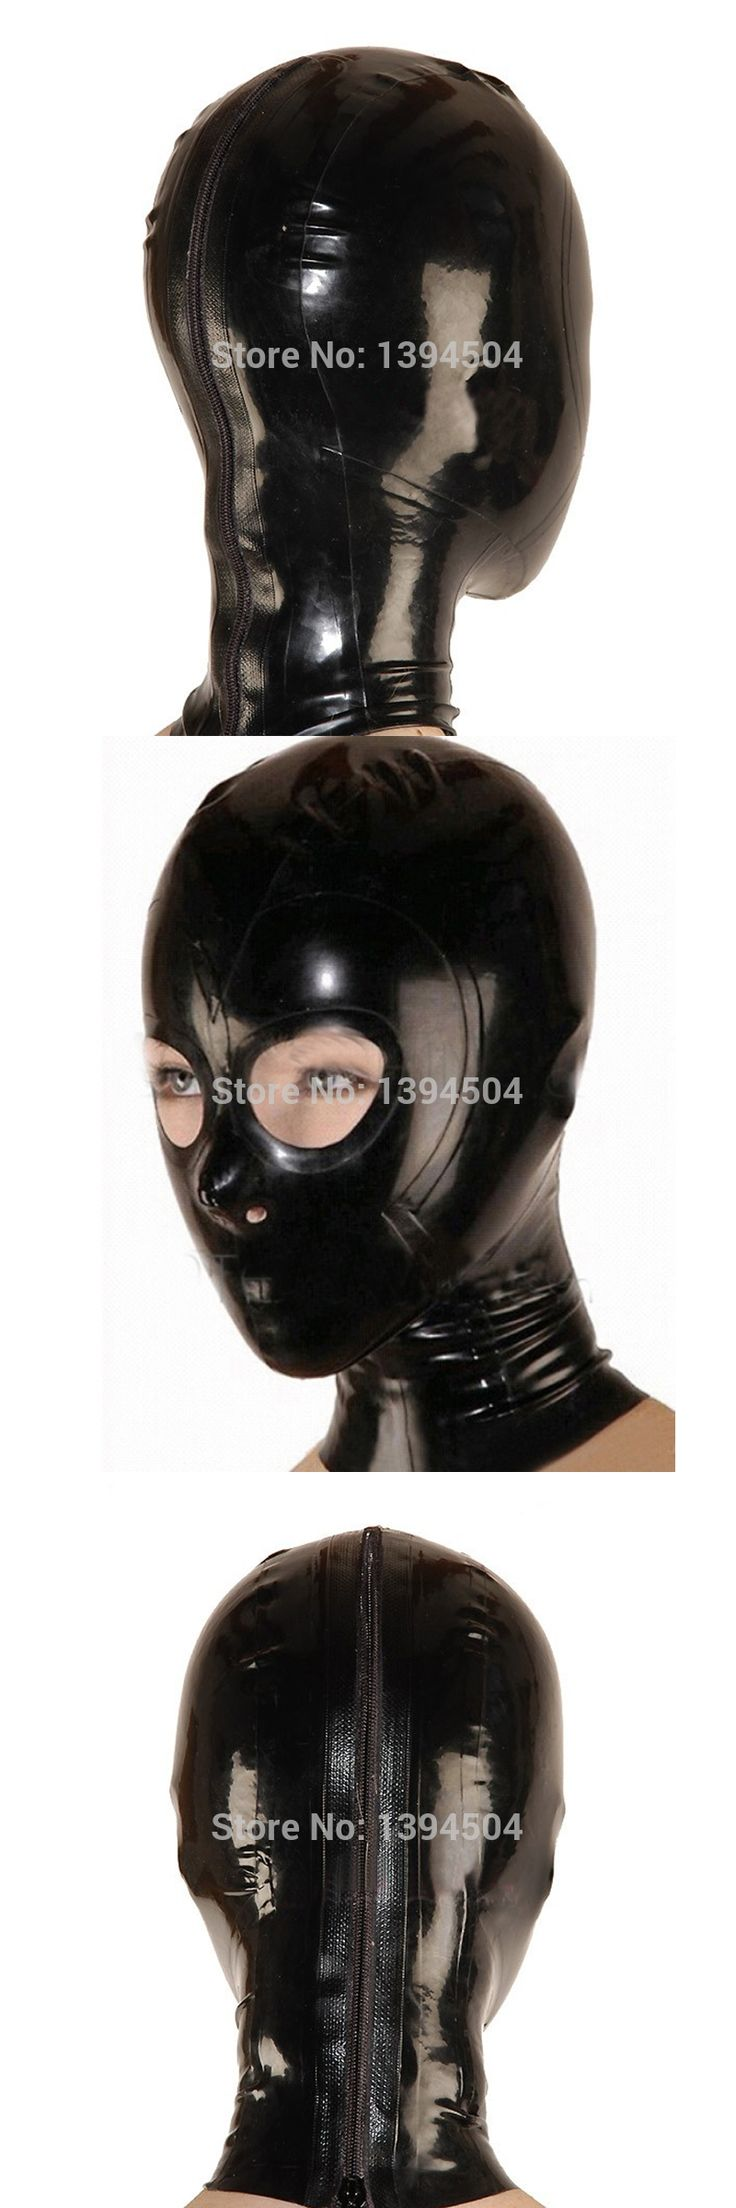 New Sale Bodysuit Bodystocking Body Stocking Sexy Latex Hoods Mask Open Monochrome Common Hood Free Shipping Fast Delivery